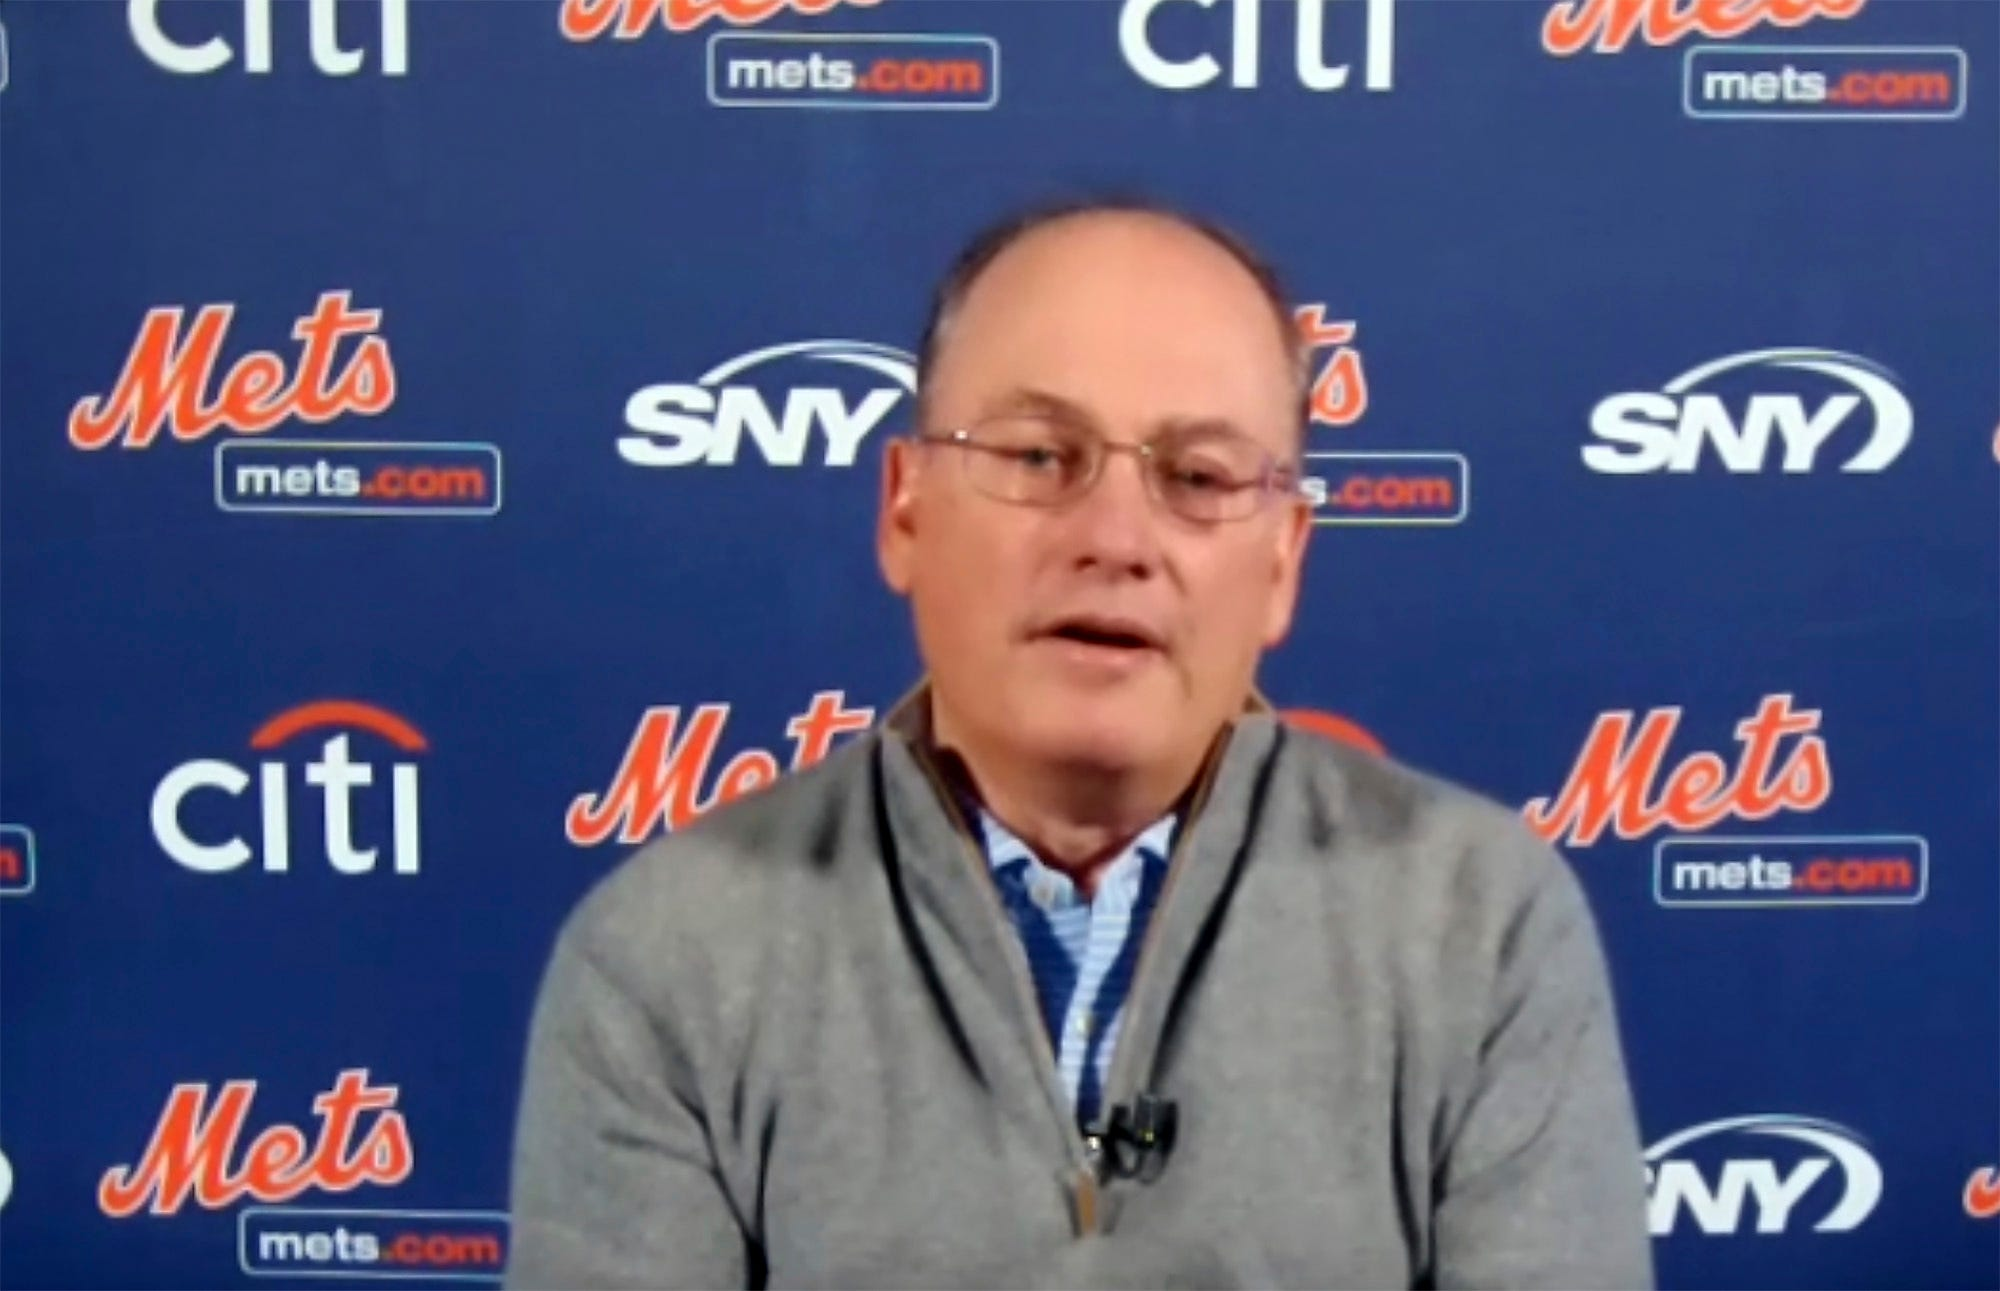 Mets parting ways with two employees following team's workplace culture review